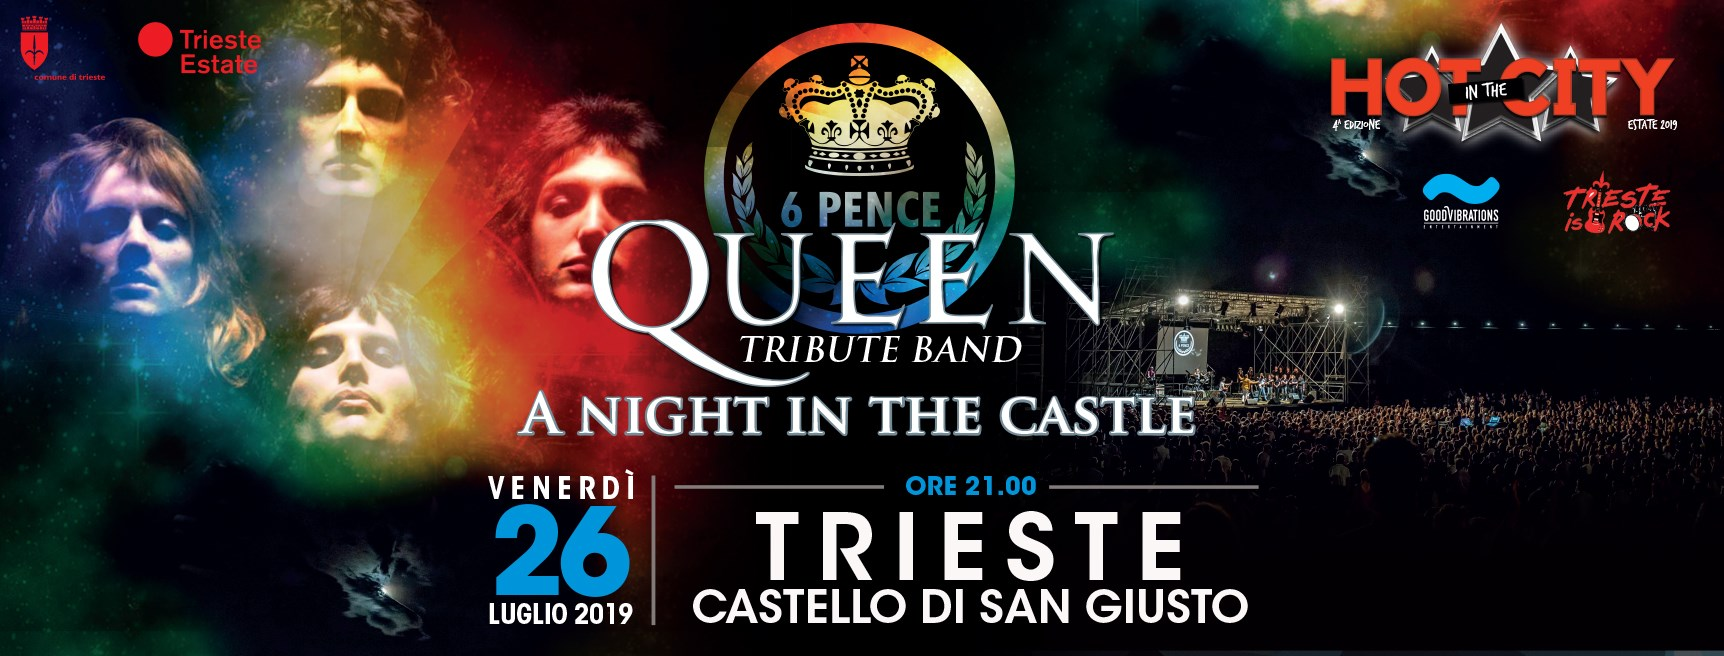 "Rimborso evento ""6 Pence – A night in the castle"" del 26.07.2019"